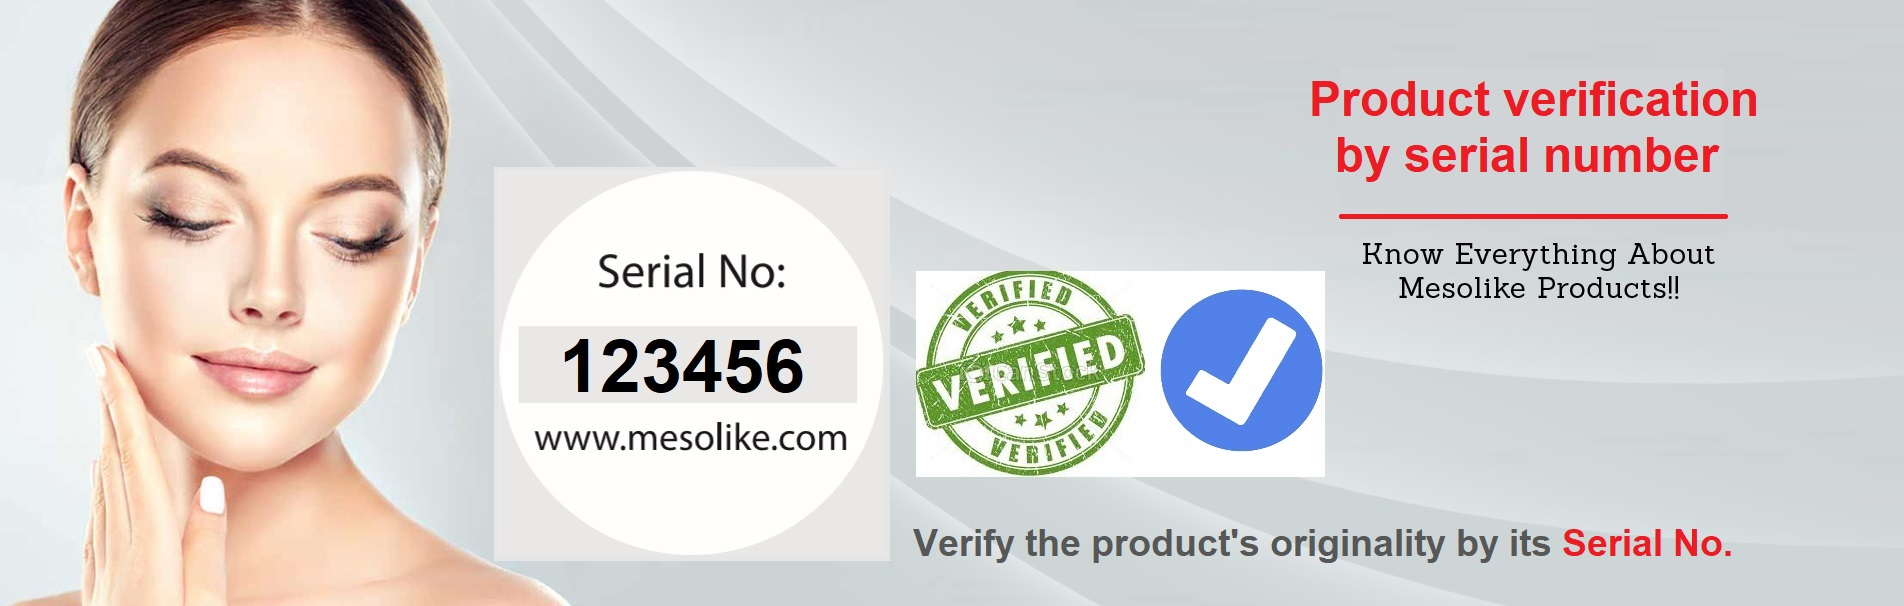 Mwsolike verification by serial number